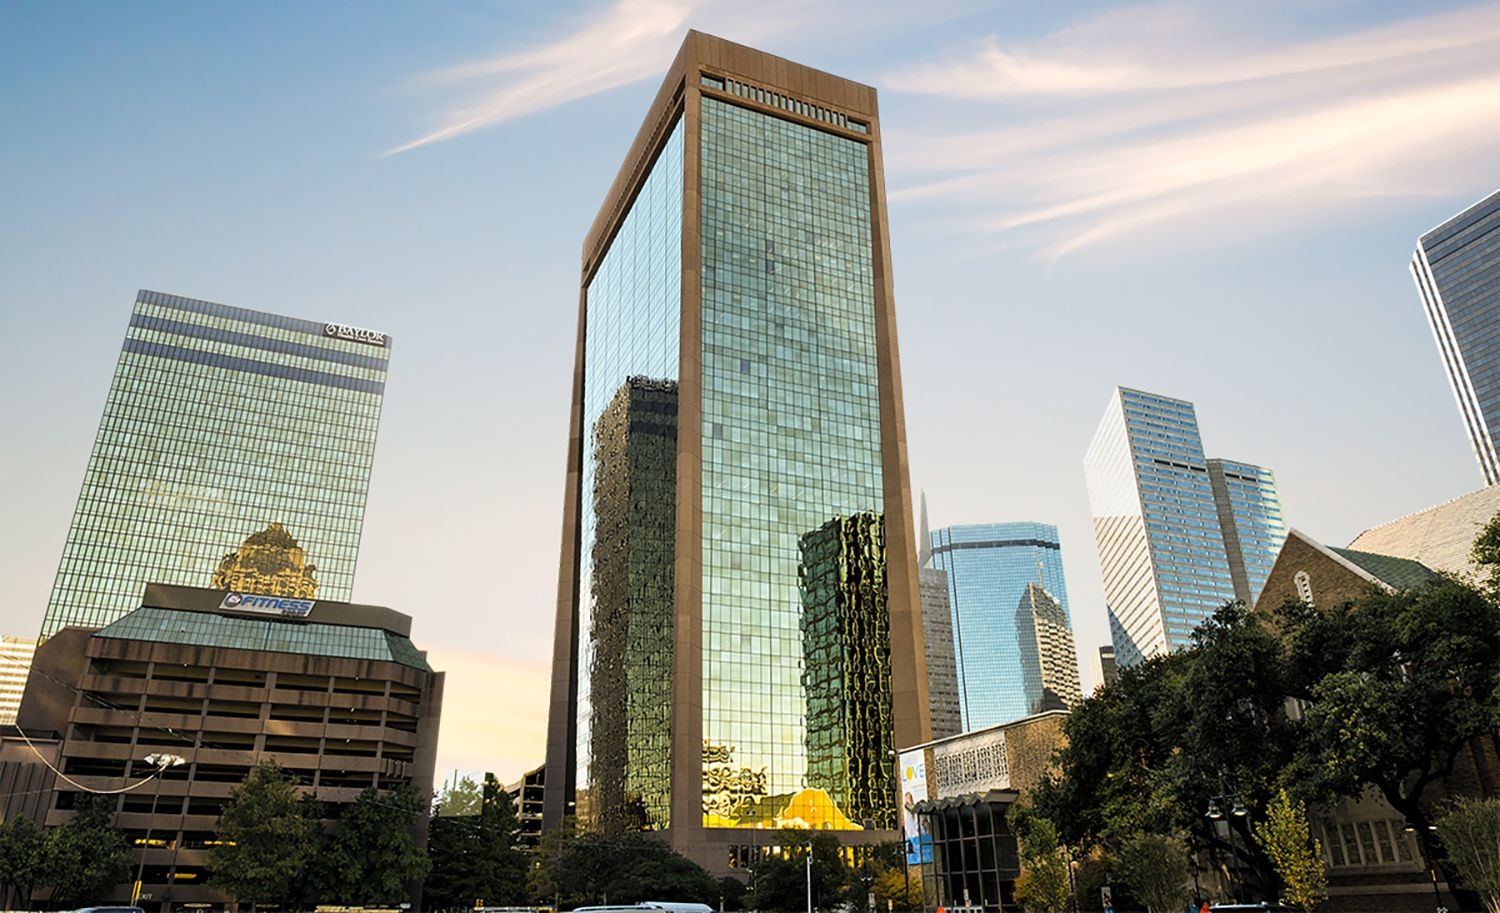 World Class Capital owns the 717 Harwood tower.